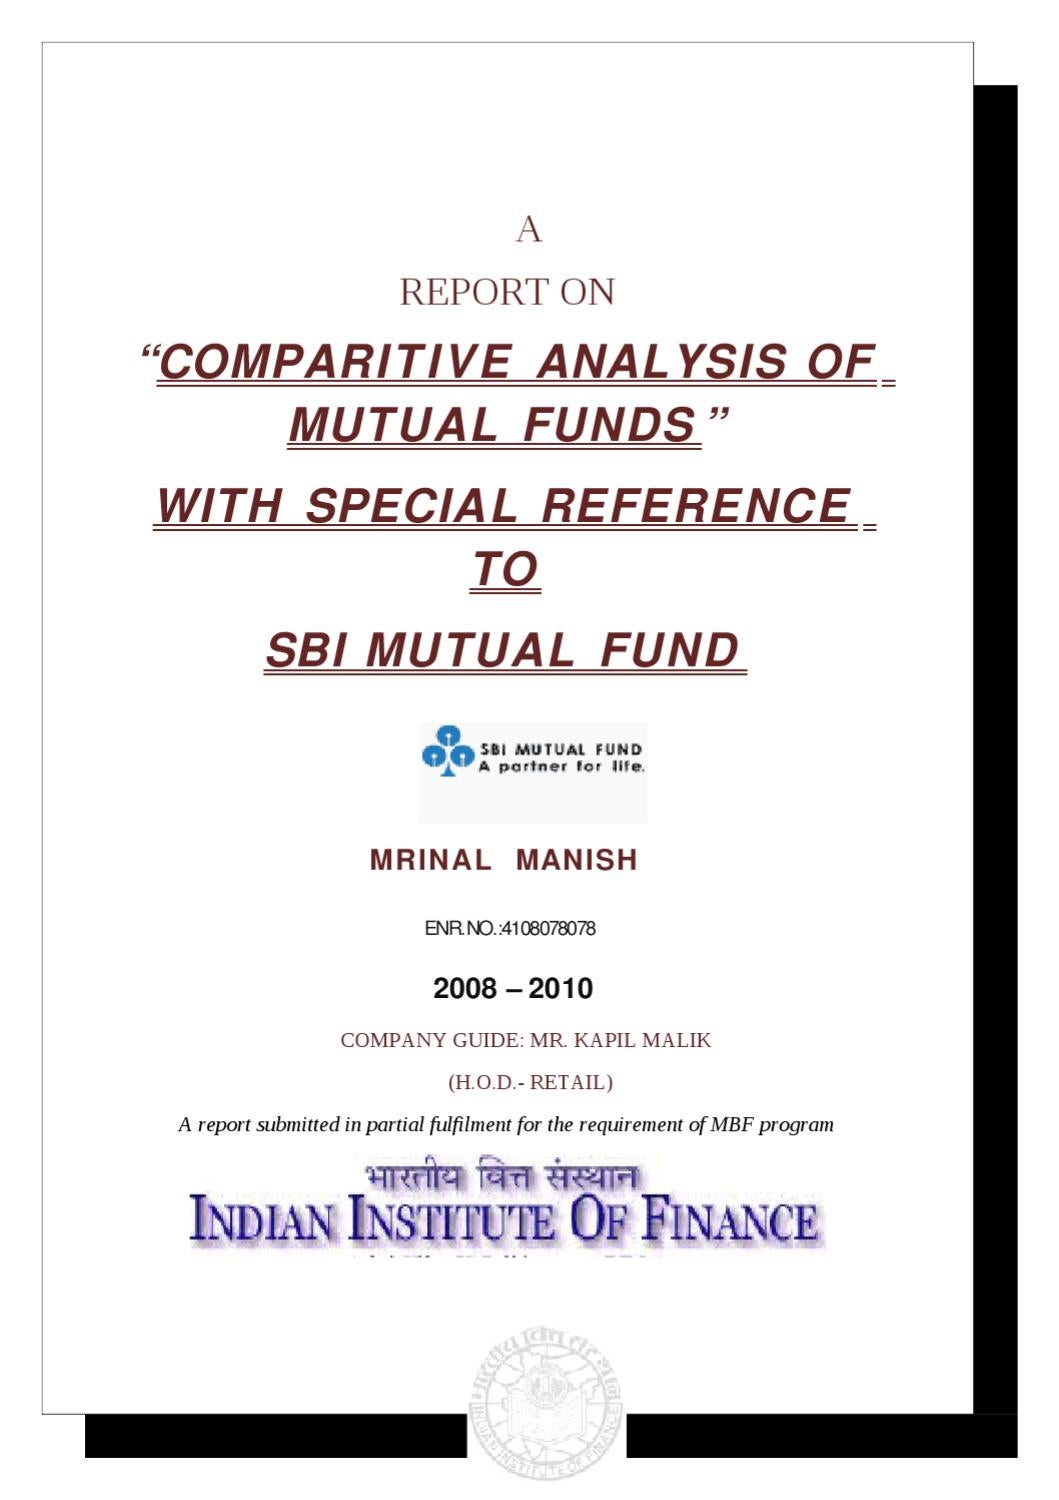 MUTUAL FUNDS AND ULIPS